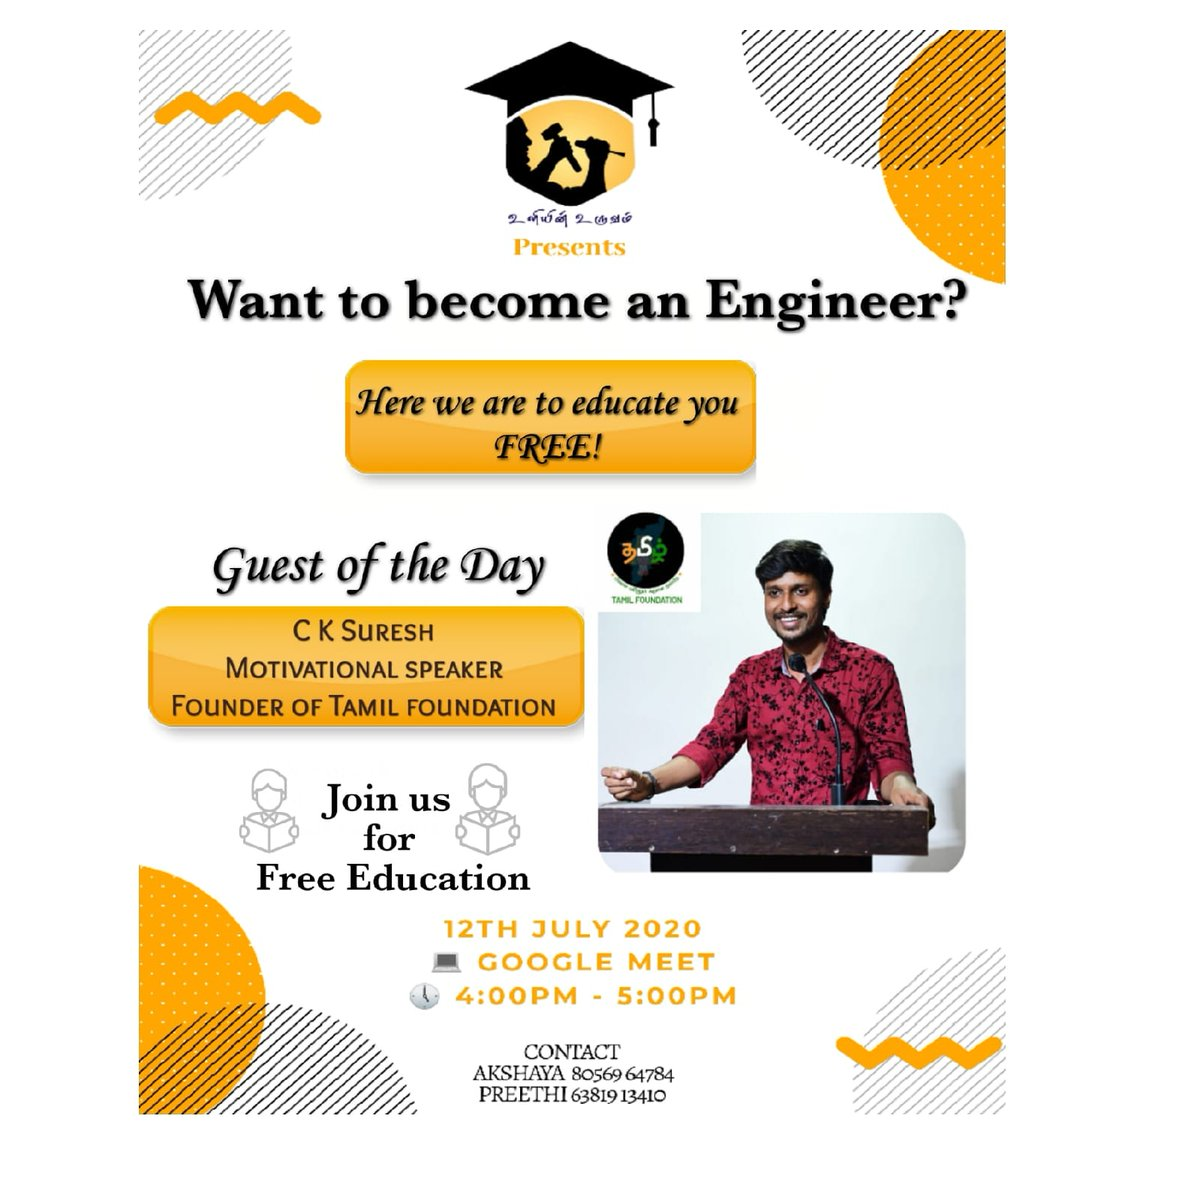 Want to become an engineer? Here's your way. #anbudendd #dazzle #dazzledusted #students #studentlife #youth #studentlife #college #collegelife #collection #thalapathy #thalapathyvijay #thala #vijaytv #hansika #poojahegde #online #dailyfluff #dailydriven #trip #today #cousinpic.twitter.com/XY0nFIydIL